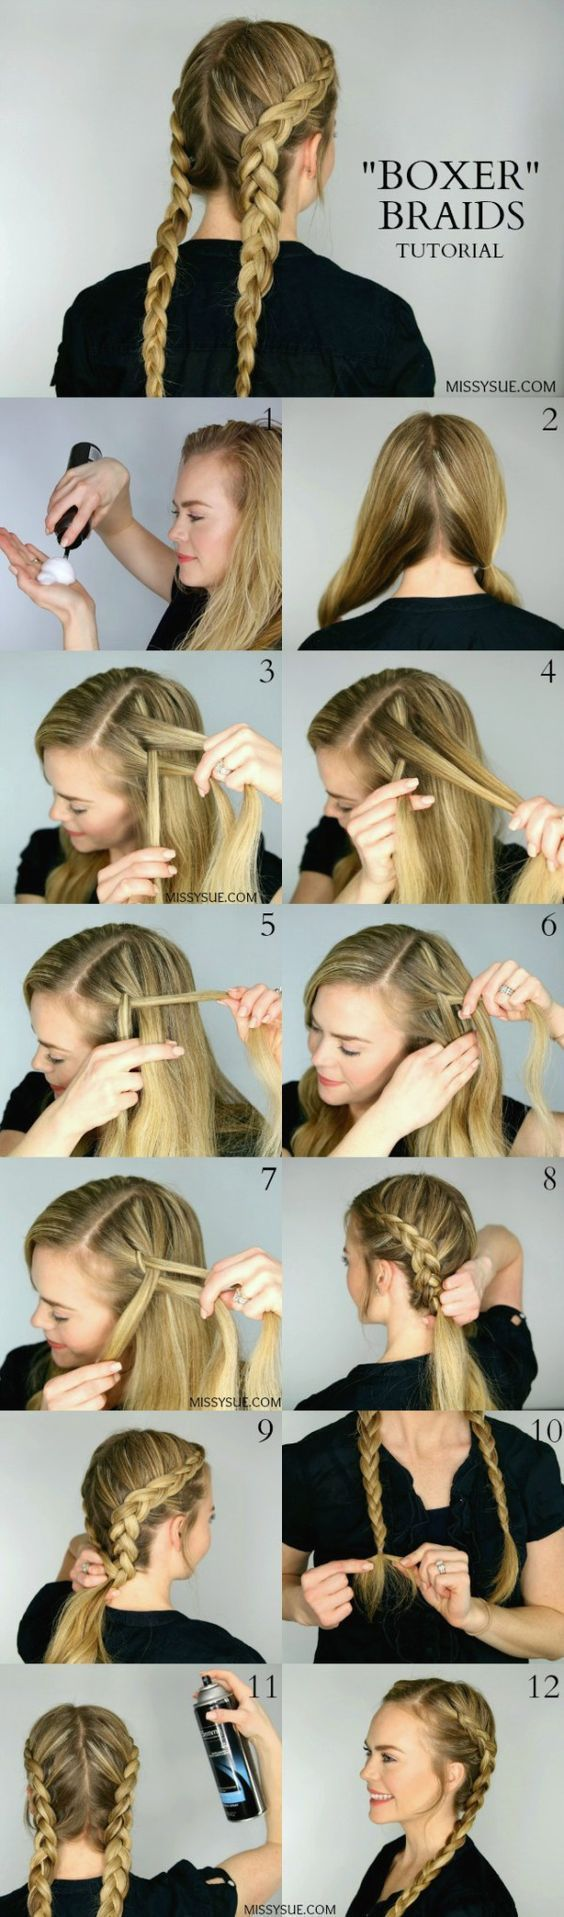 i2.wp.com usefuldiyprojects.com wp-content uploads 2016 10 braid5.jpg